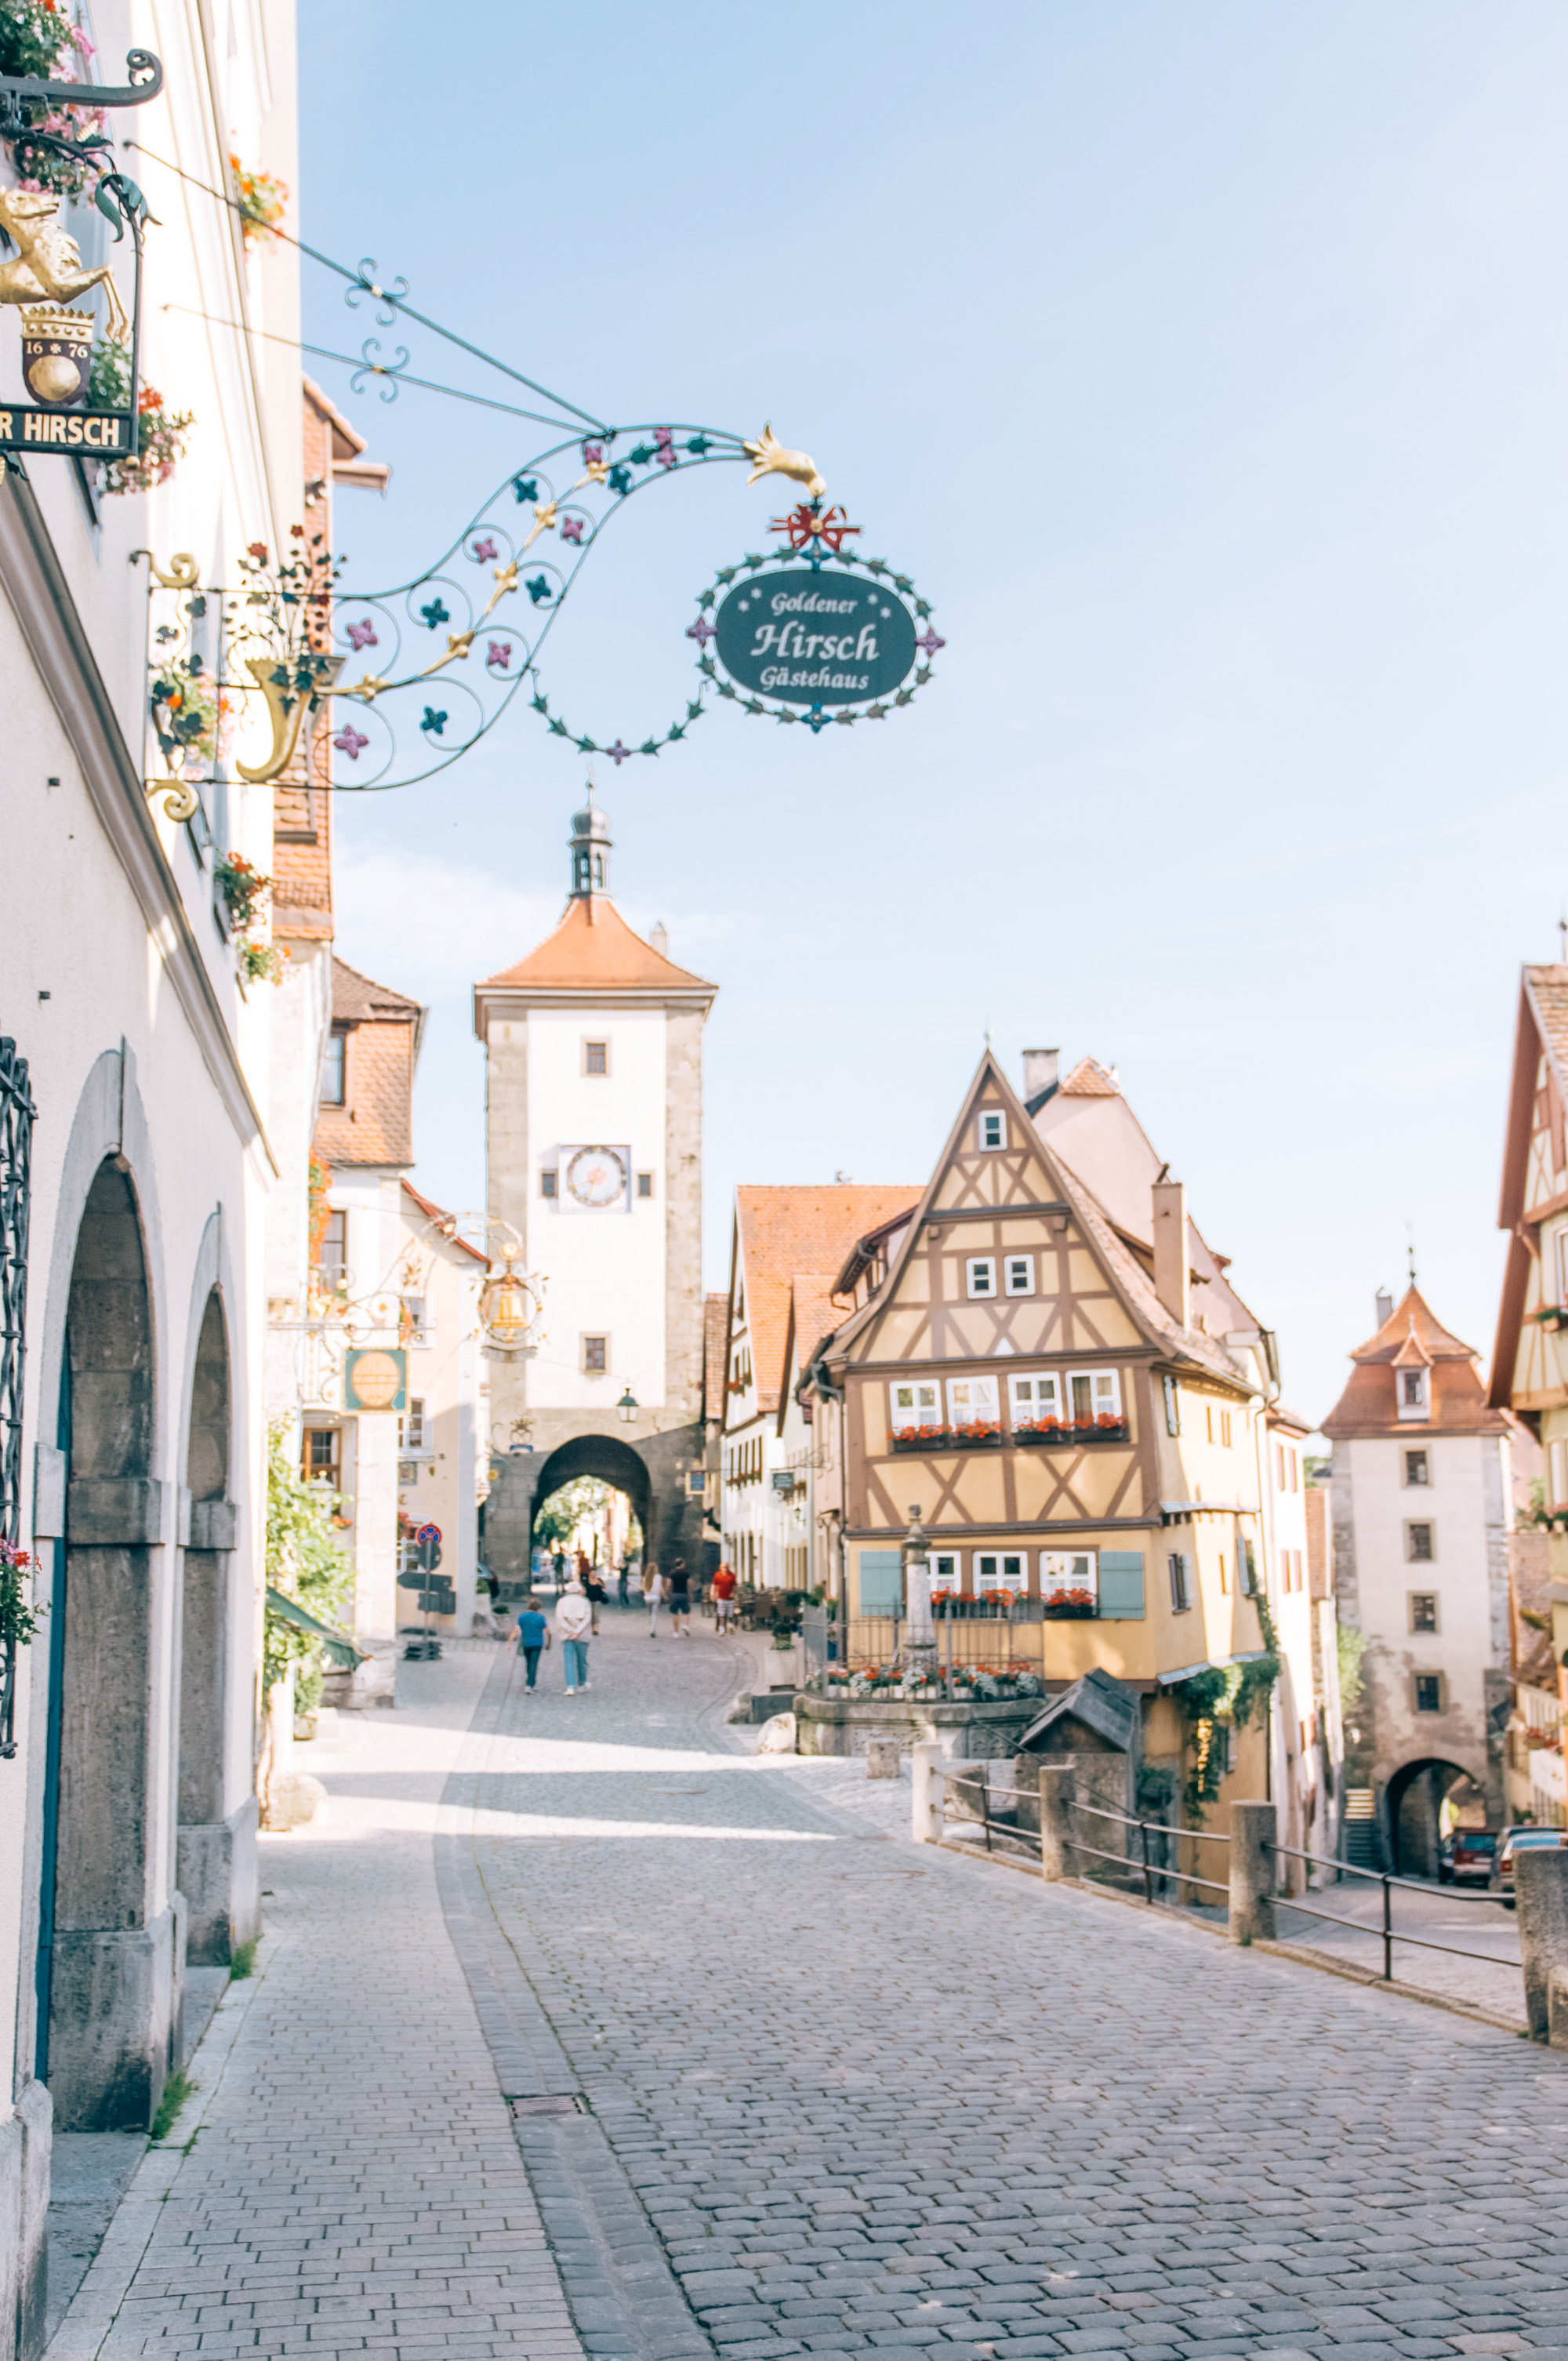 rothenburg-xavier-manhing-5.jpg